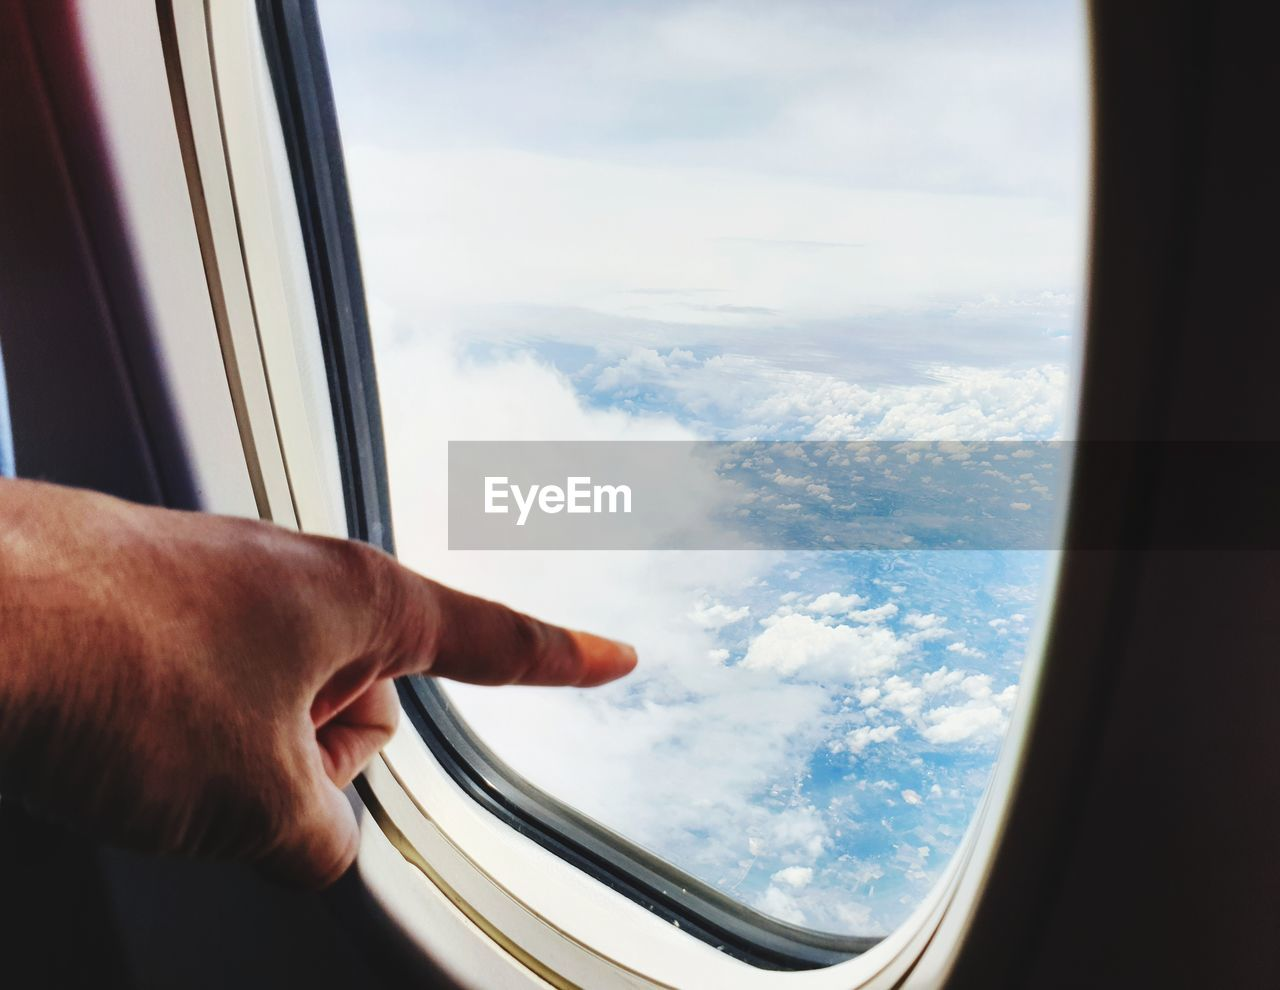 Cropped hand of person gesturing by airplane window